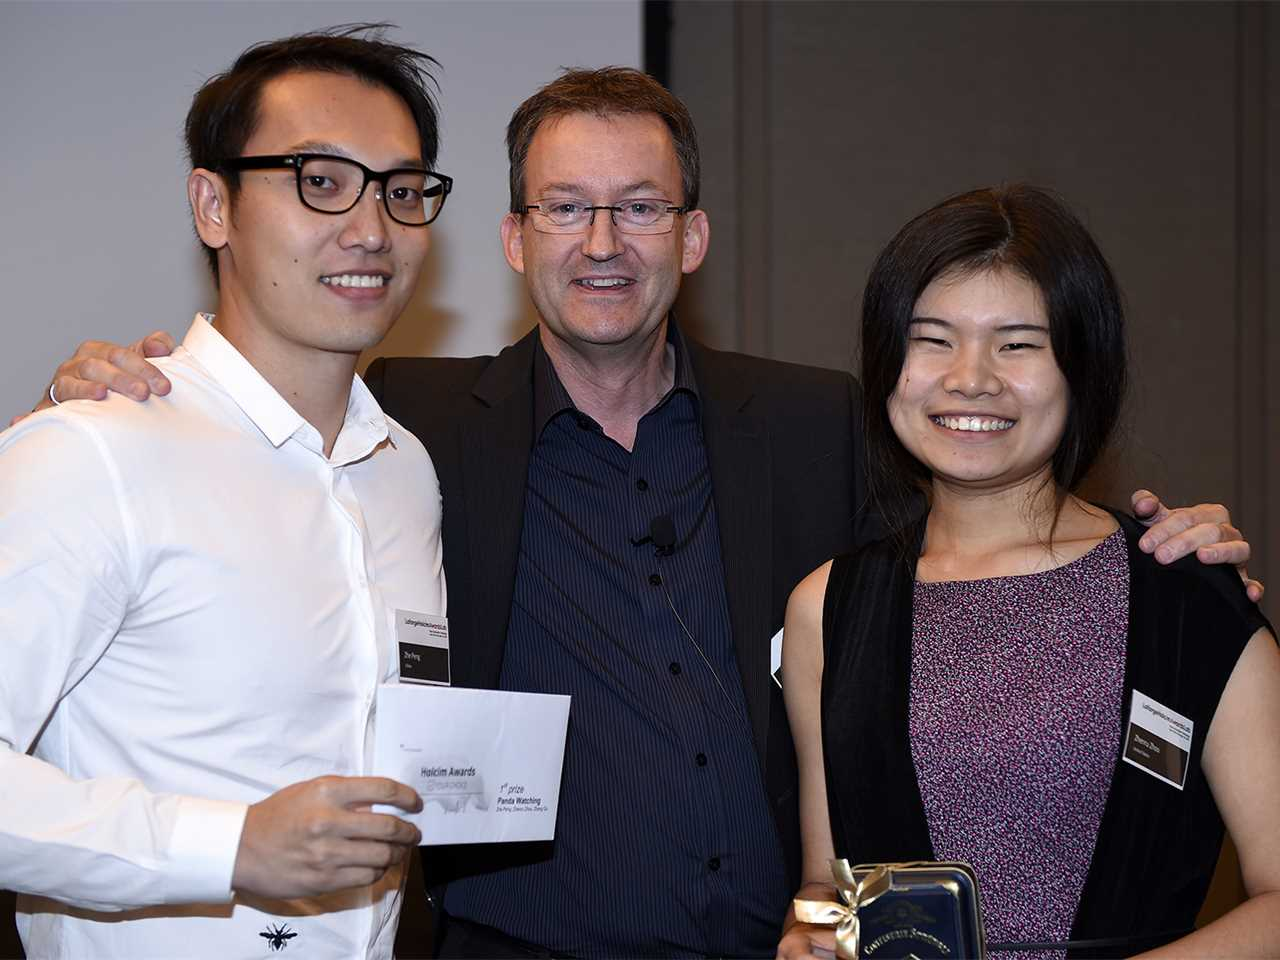 Prize hand-over: Holcim Awards Your Choice Social voting competition 2015